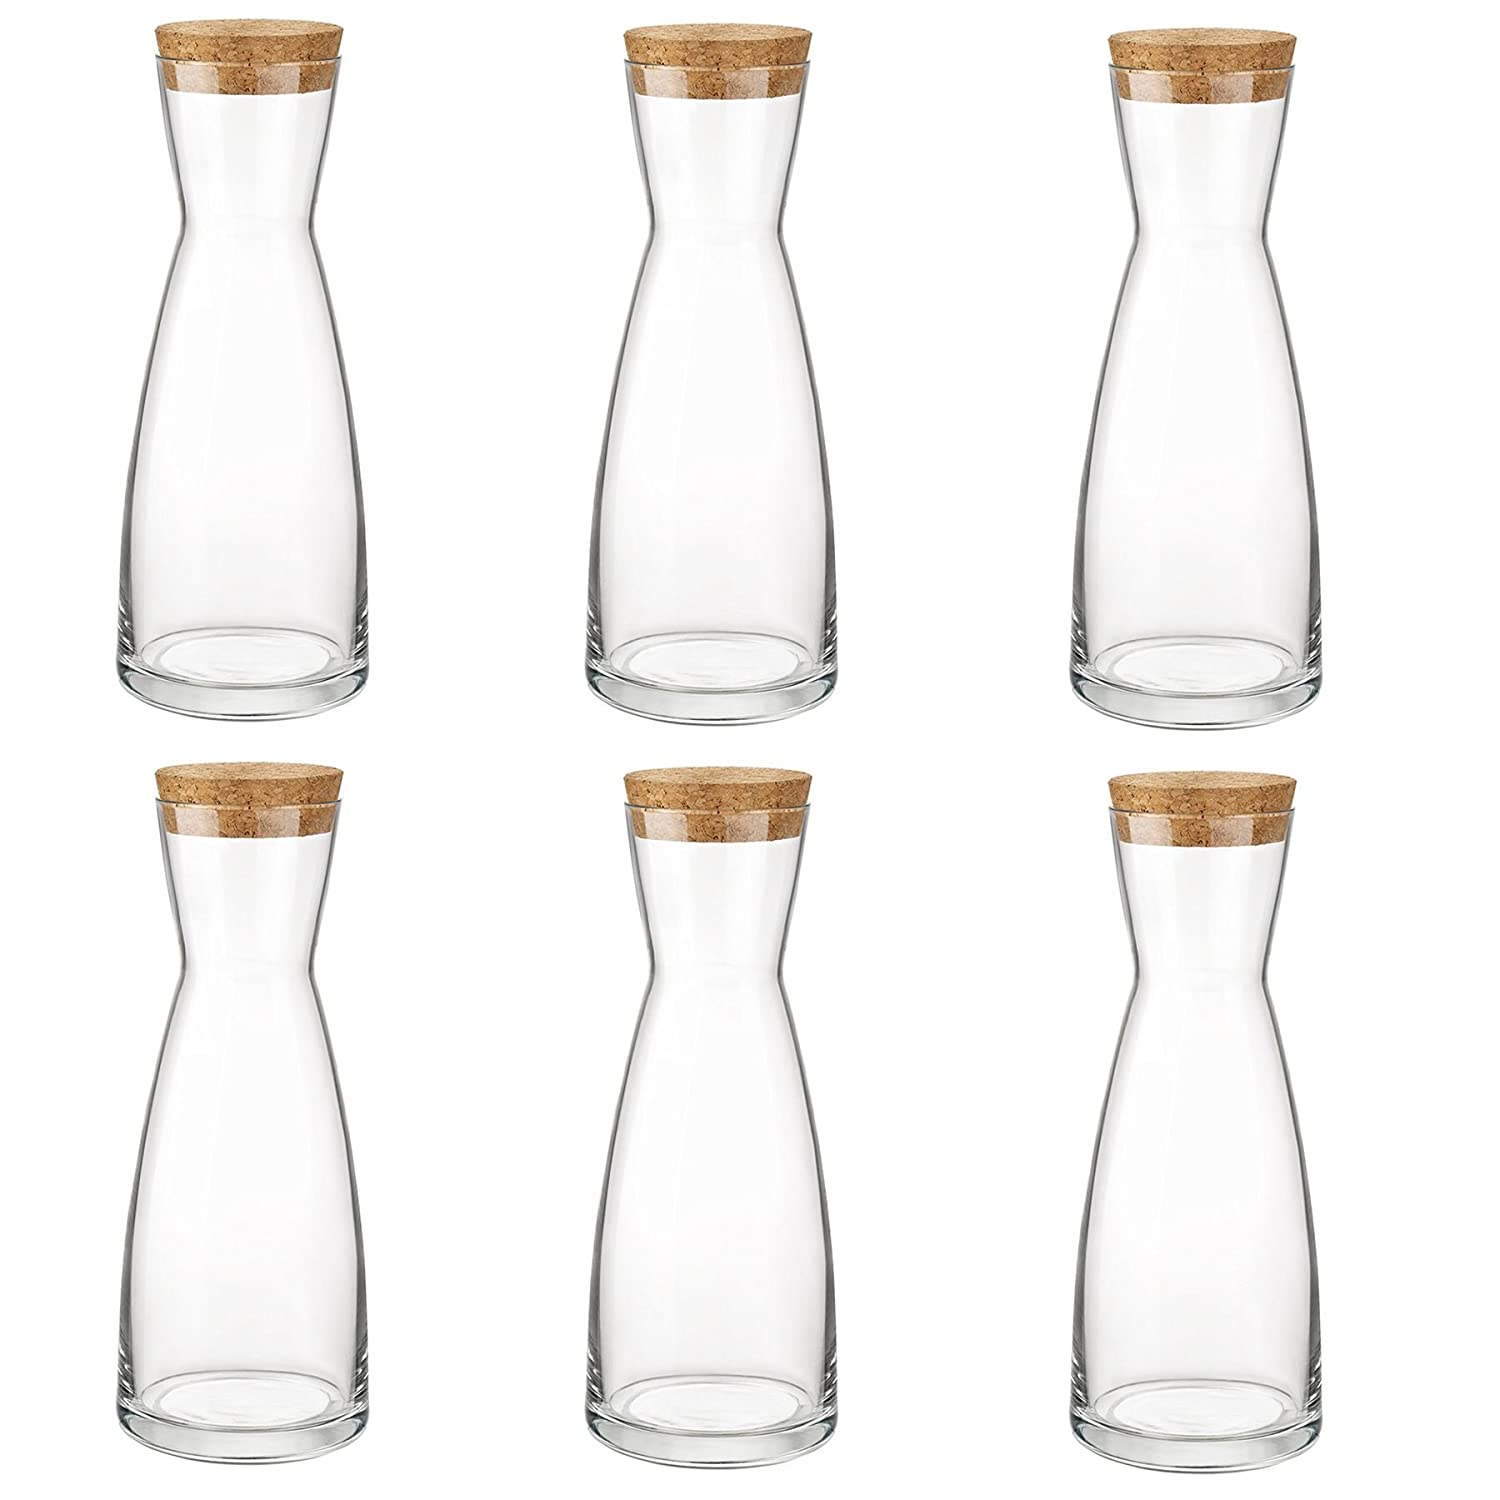 Bormioli Rocco Ypsilon Water Jug Carafe Decanter With Lid 285ml - Pack of 6